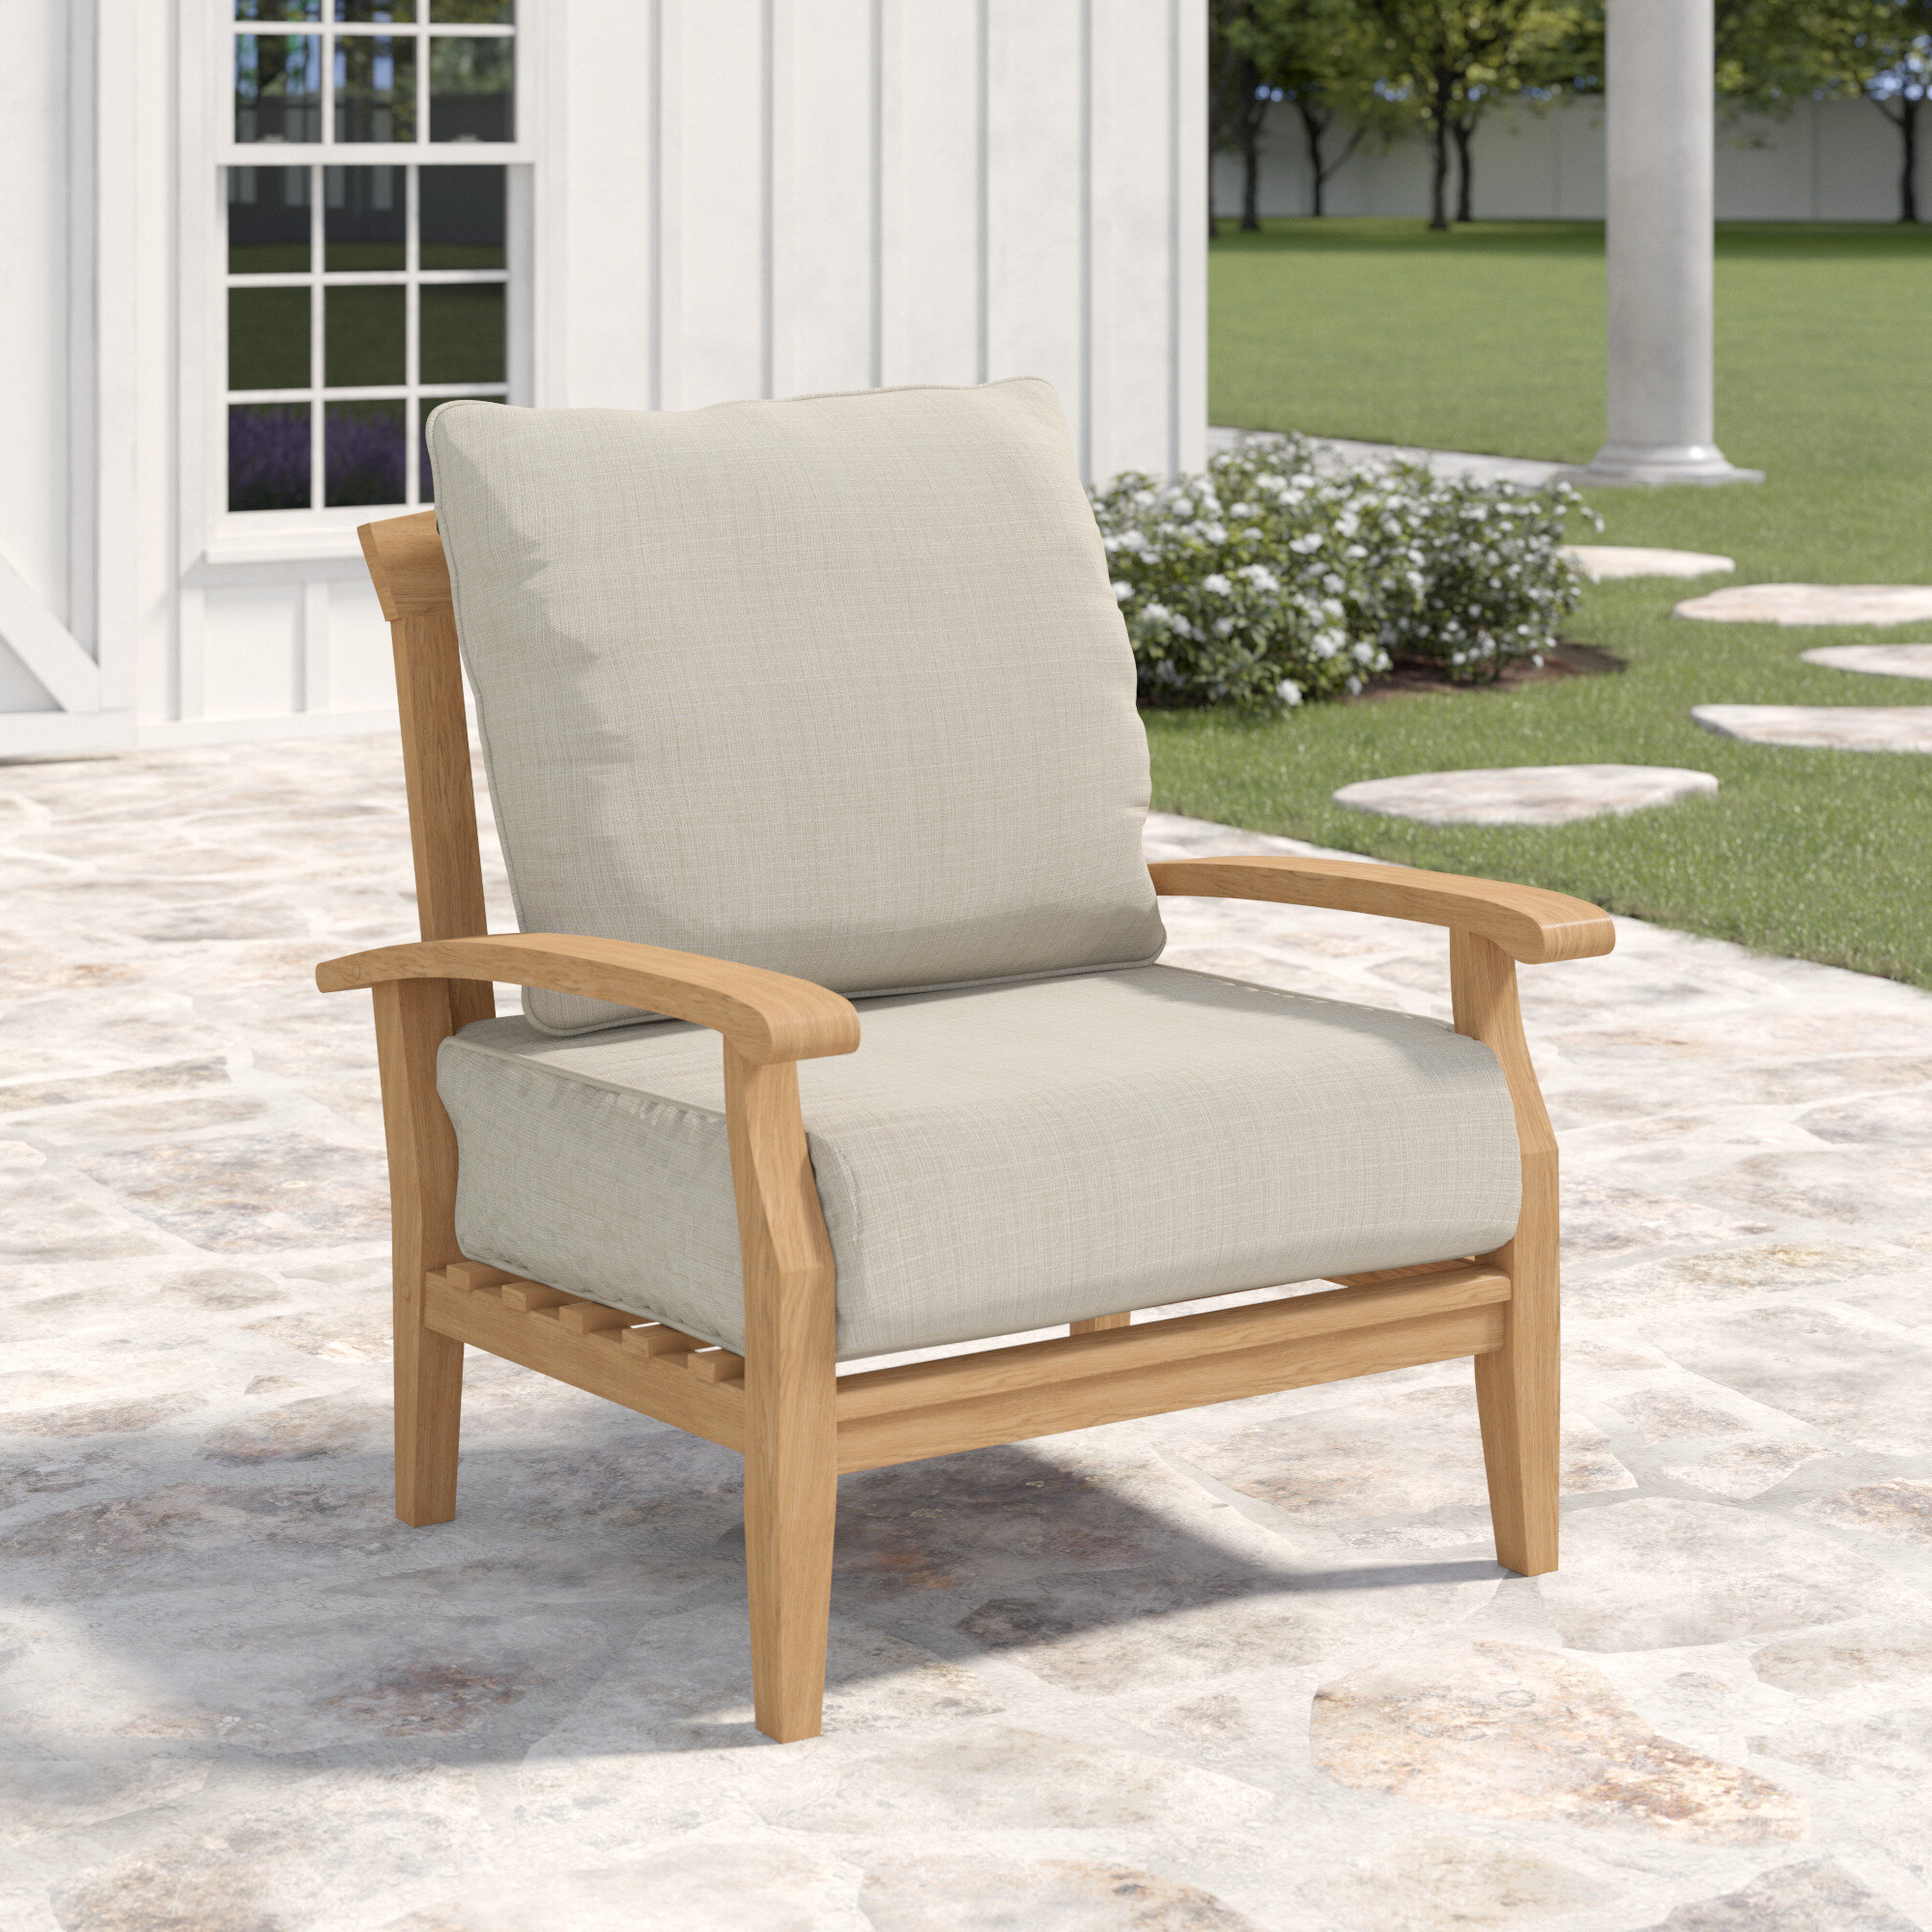 2020 Summerton Teak Patio Sofas With Cushions Regarding Summerton Teak Patio Chair With Cushions (View 1 of 20)